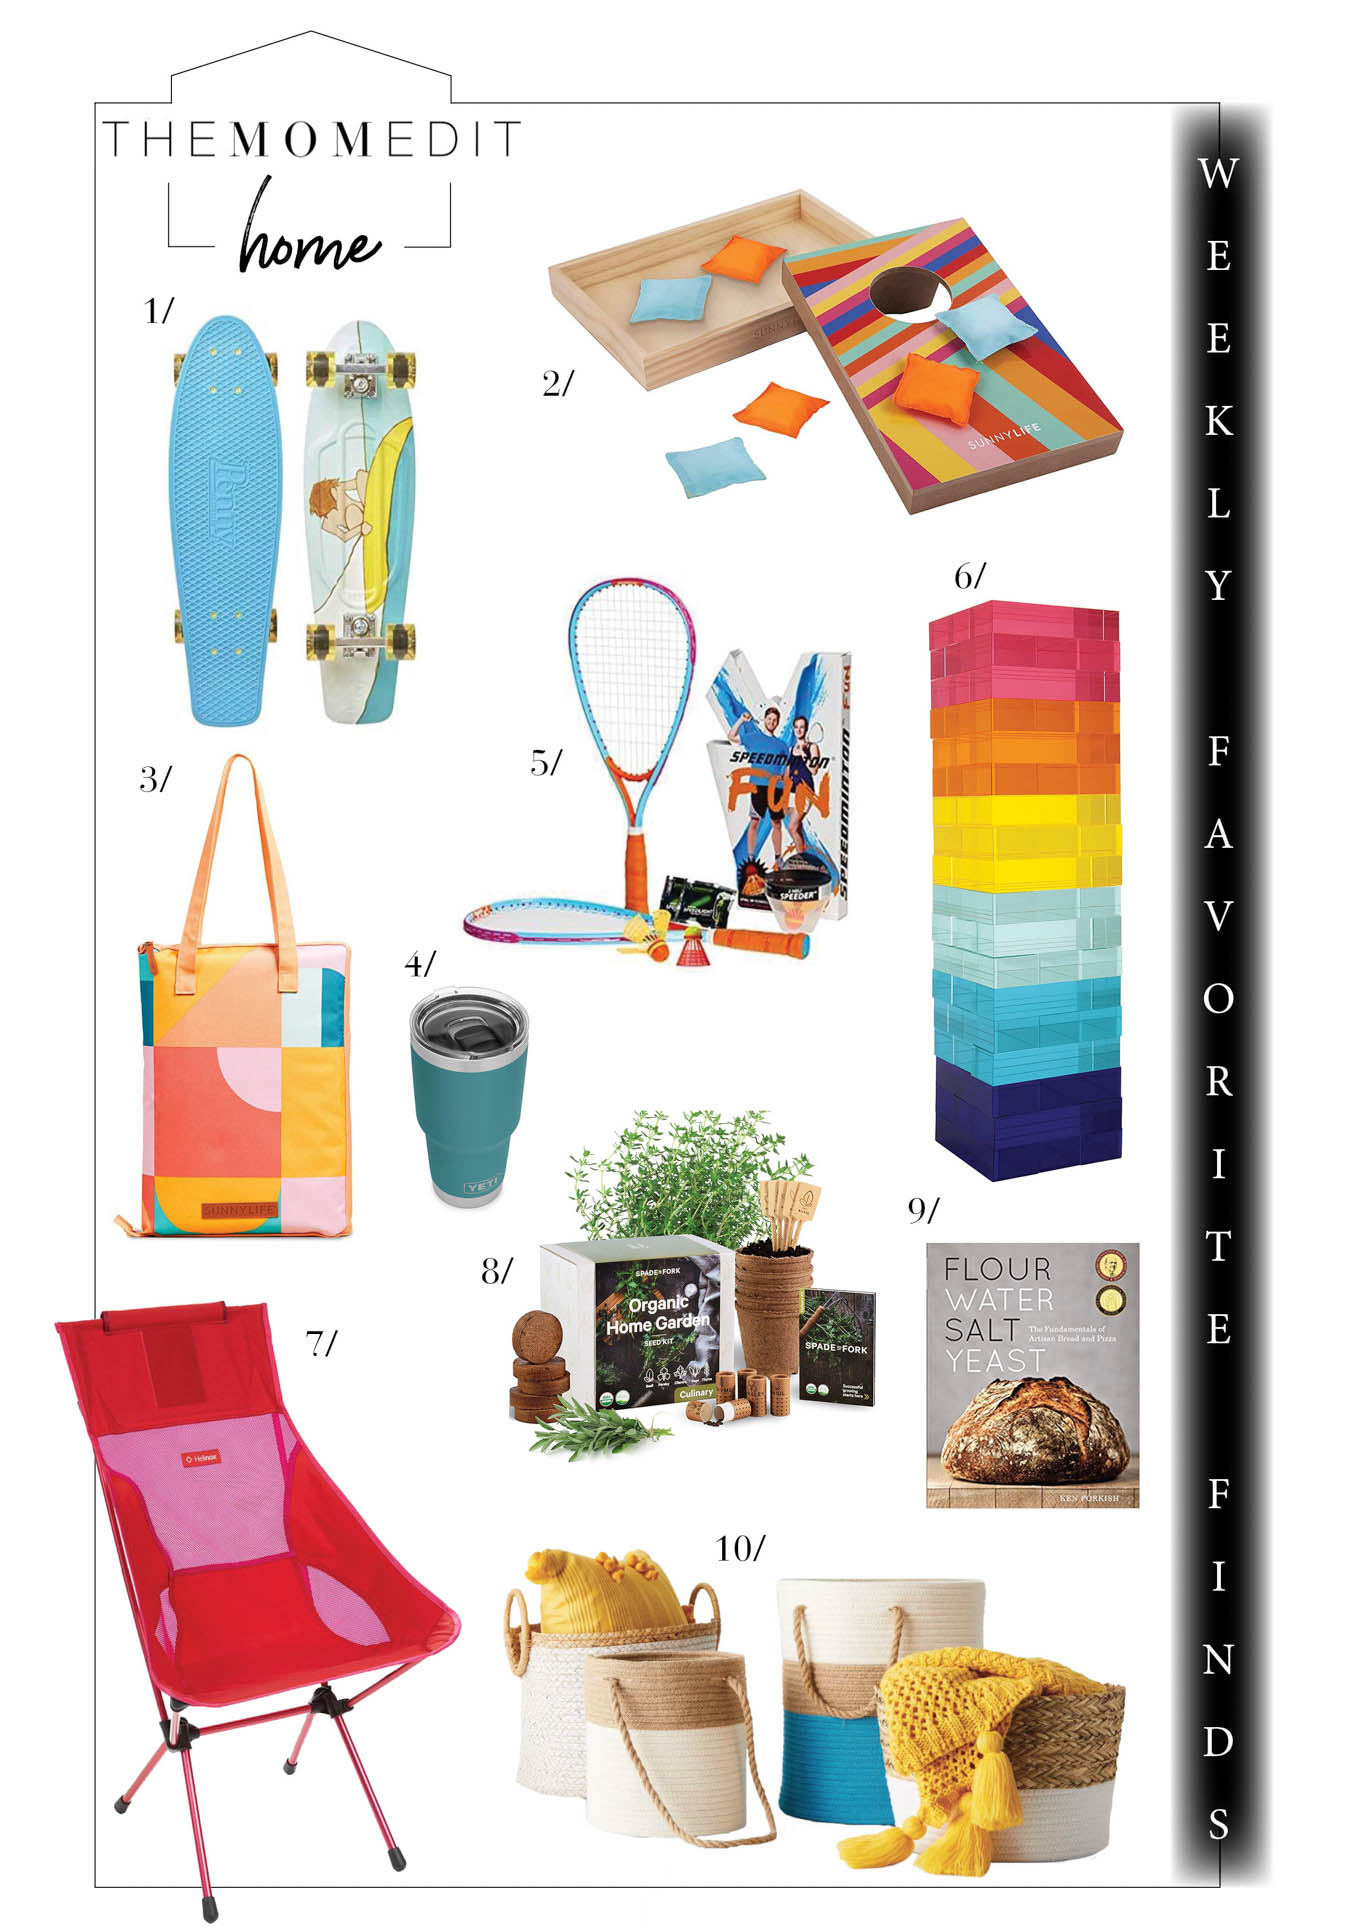 Skateboarding, cornhole, picnic blankets, herb gardens & more ways to have socially distant fun this summer. Plus sales at Wayfair, CB2 & Williams-Sonoma.